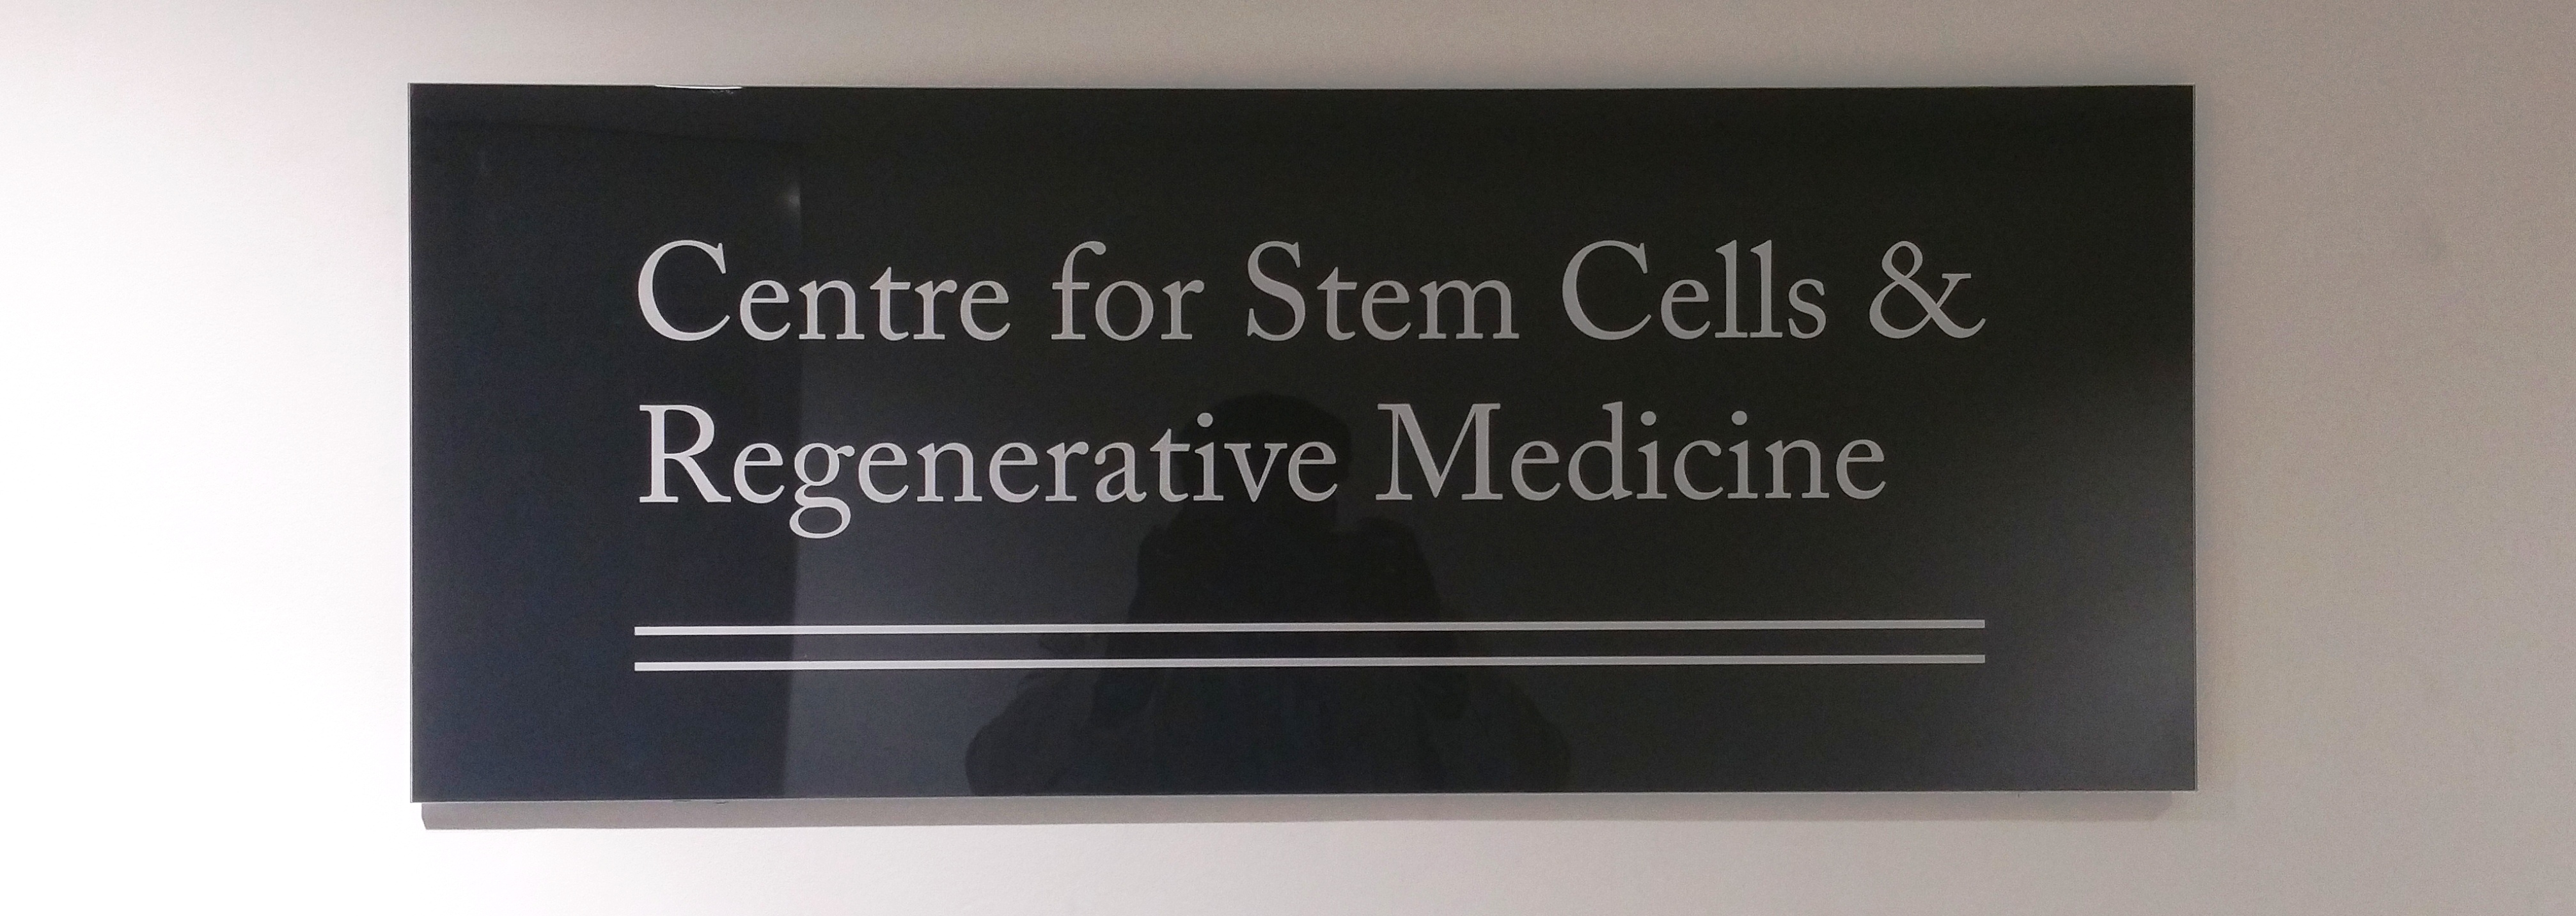 Introduction to KCL's Centre for Stem Cells and Regenerative